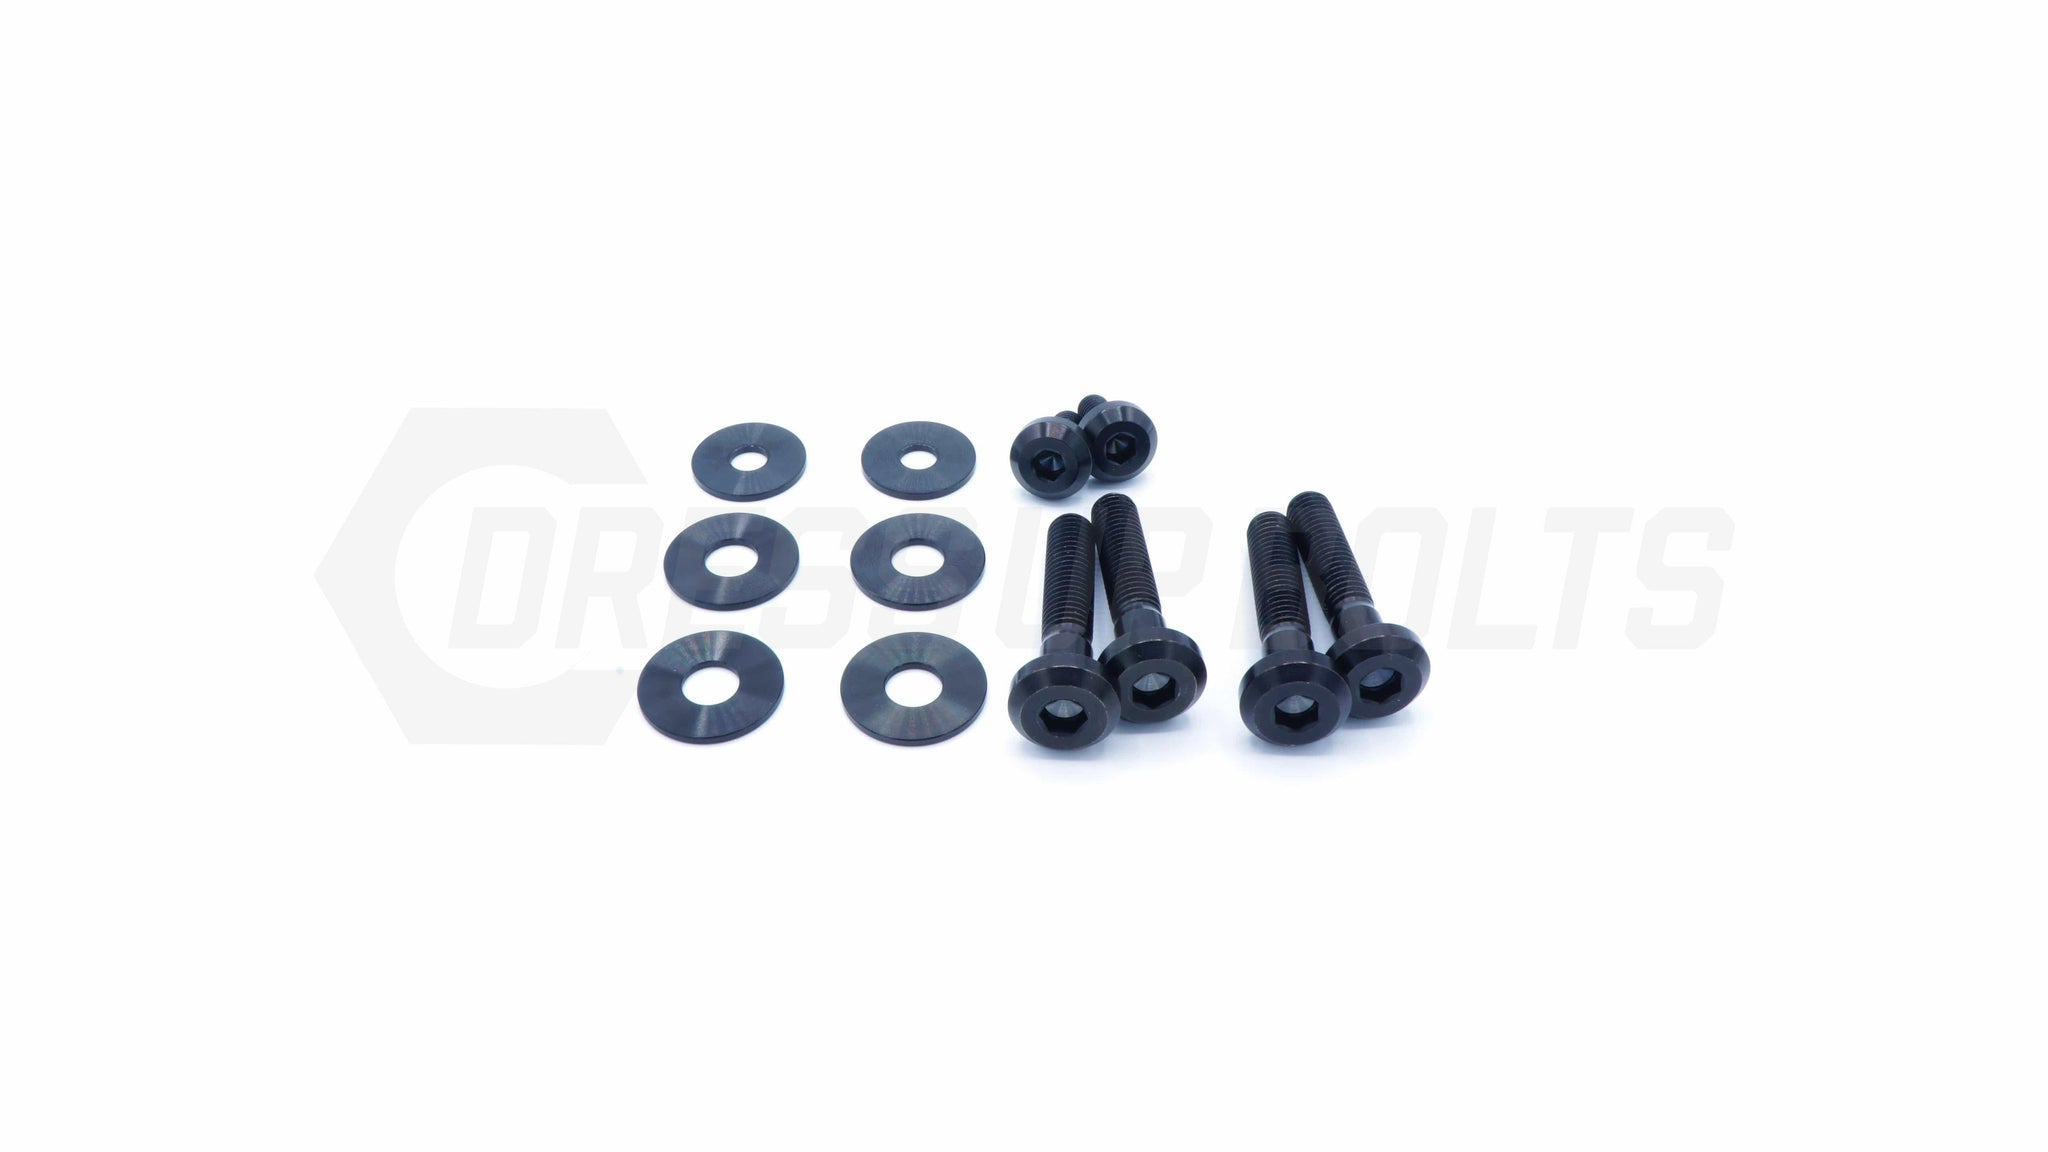 Dress Up Bolts Titanium Hardware Trunk Kit - Subaru WRX/STI (2015-2020) - DressUpBolts.com